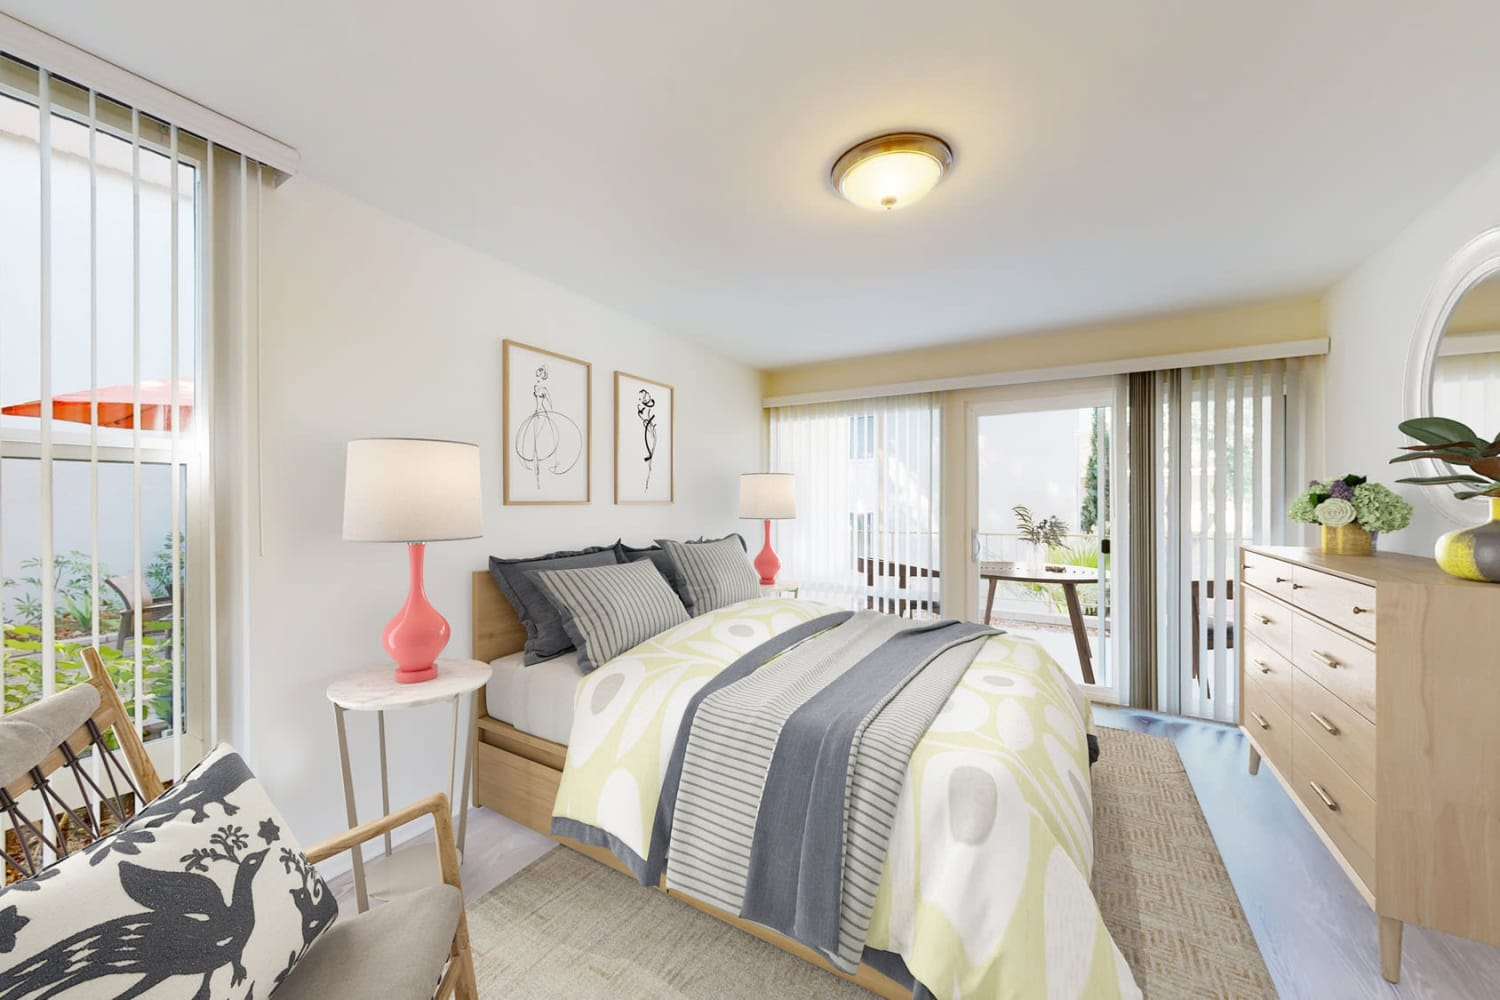 One bedroom home's bedroom with plush carpeting at West Park Village in Los Angeles, California